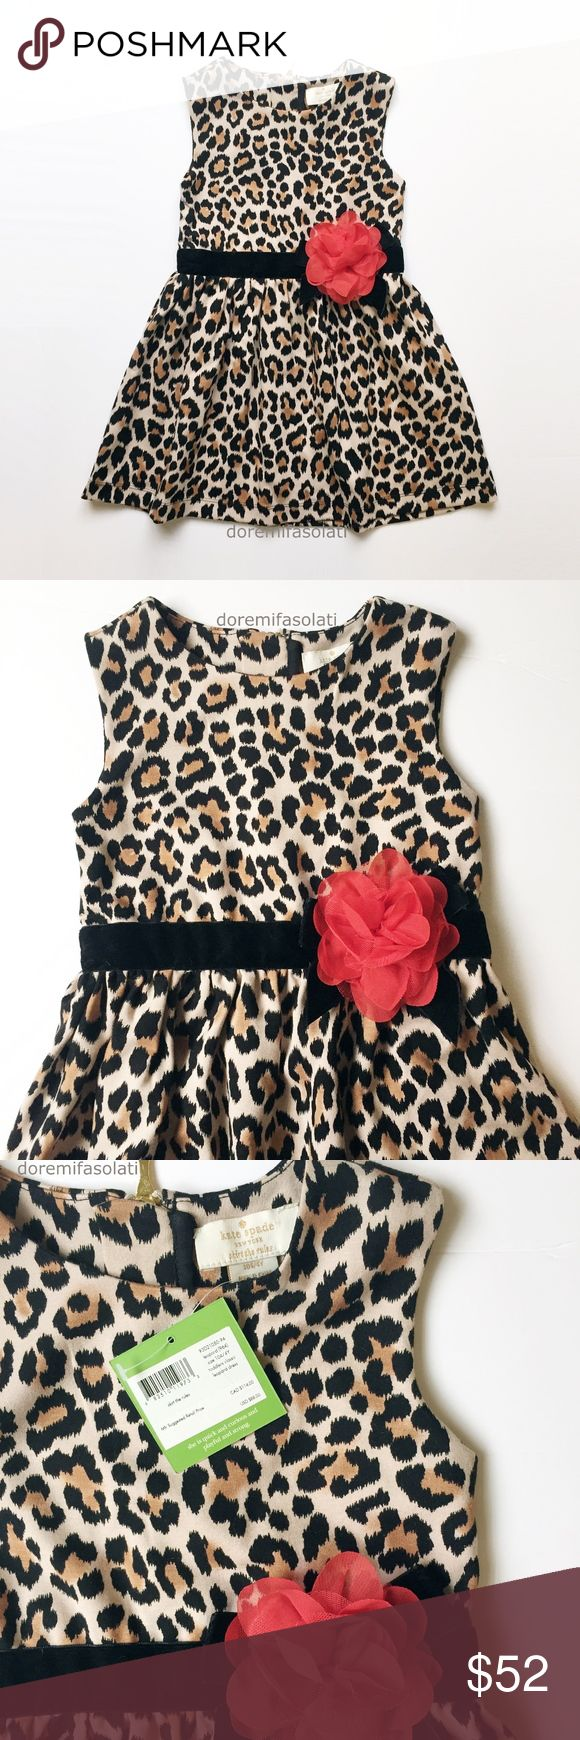 "KATE SPADE LEOPARD mini dress top toddler girls 4Y KATE SPADE  new york  skirt the rules   classic   leopard print.  organza rosette.  luxury gold hardware.    "" she is quick and curious and playful and strong "".    new with tags, pet/smoke free.    laid flat:   chest:  10.75"" shoulders: 9.75  shoulder to hem: 21""    party occasion everyday casual school birthday special fancy animal faux cheetah cat fur velvet belted belt red flower floral winter holiday toddler baby babies little kate…"